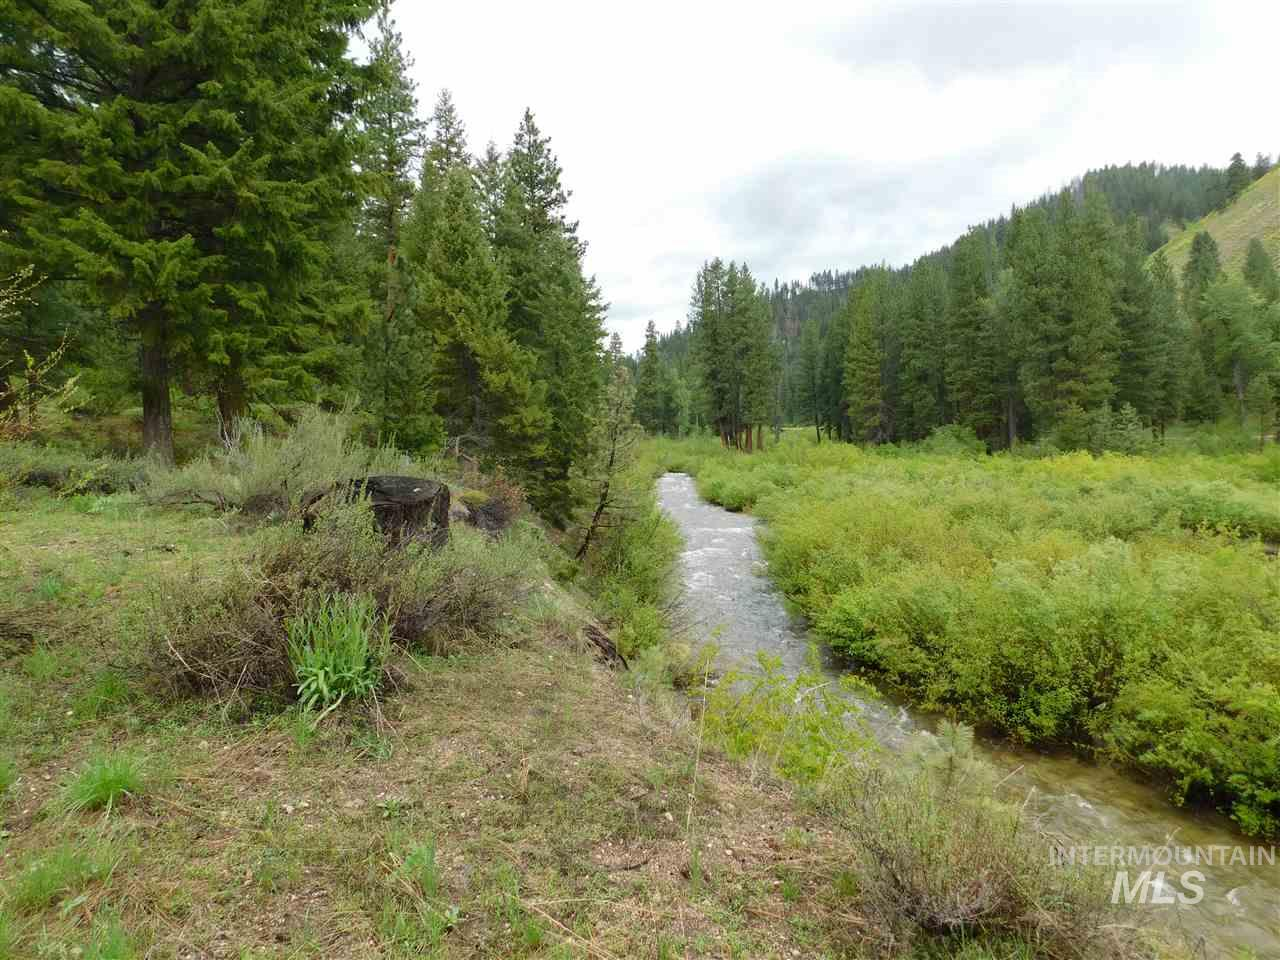 TAX 16, SEC 9, T3N R10E, Featherville, Idaho 83647, Land For Sale, Price $189,000, 98731008